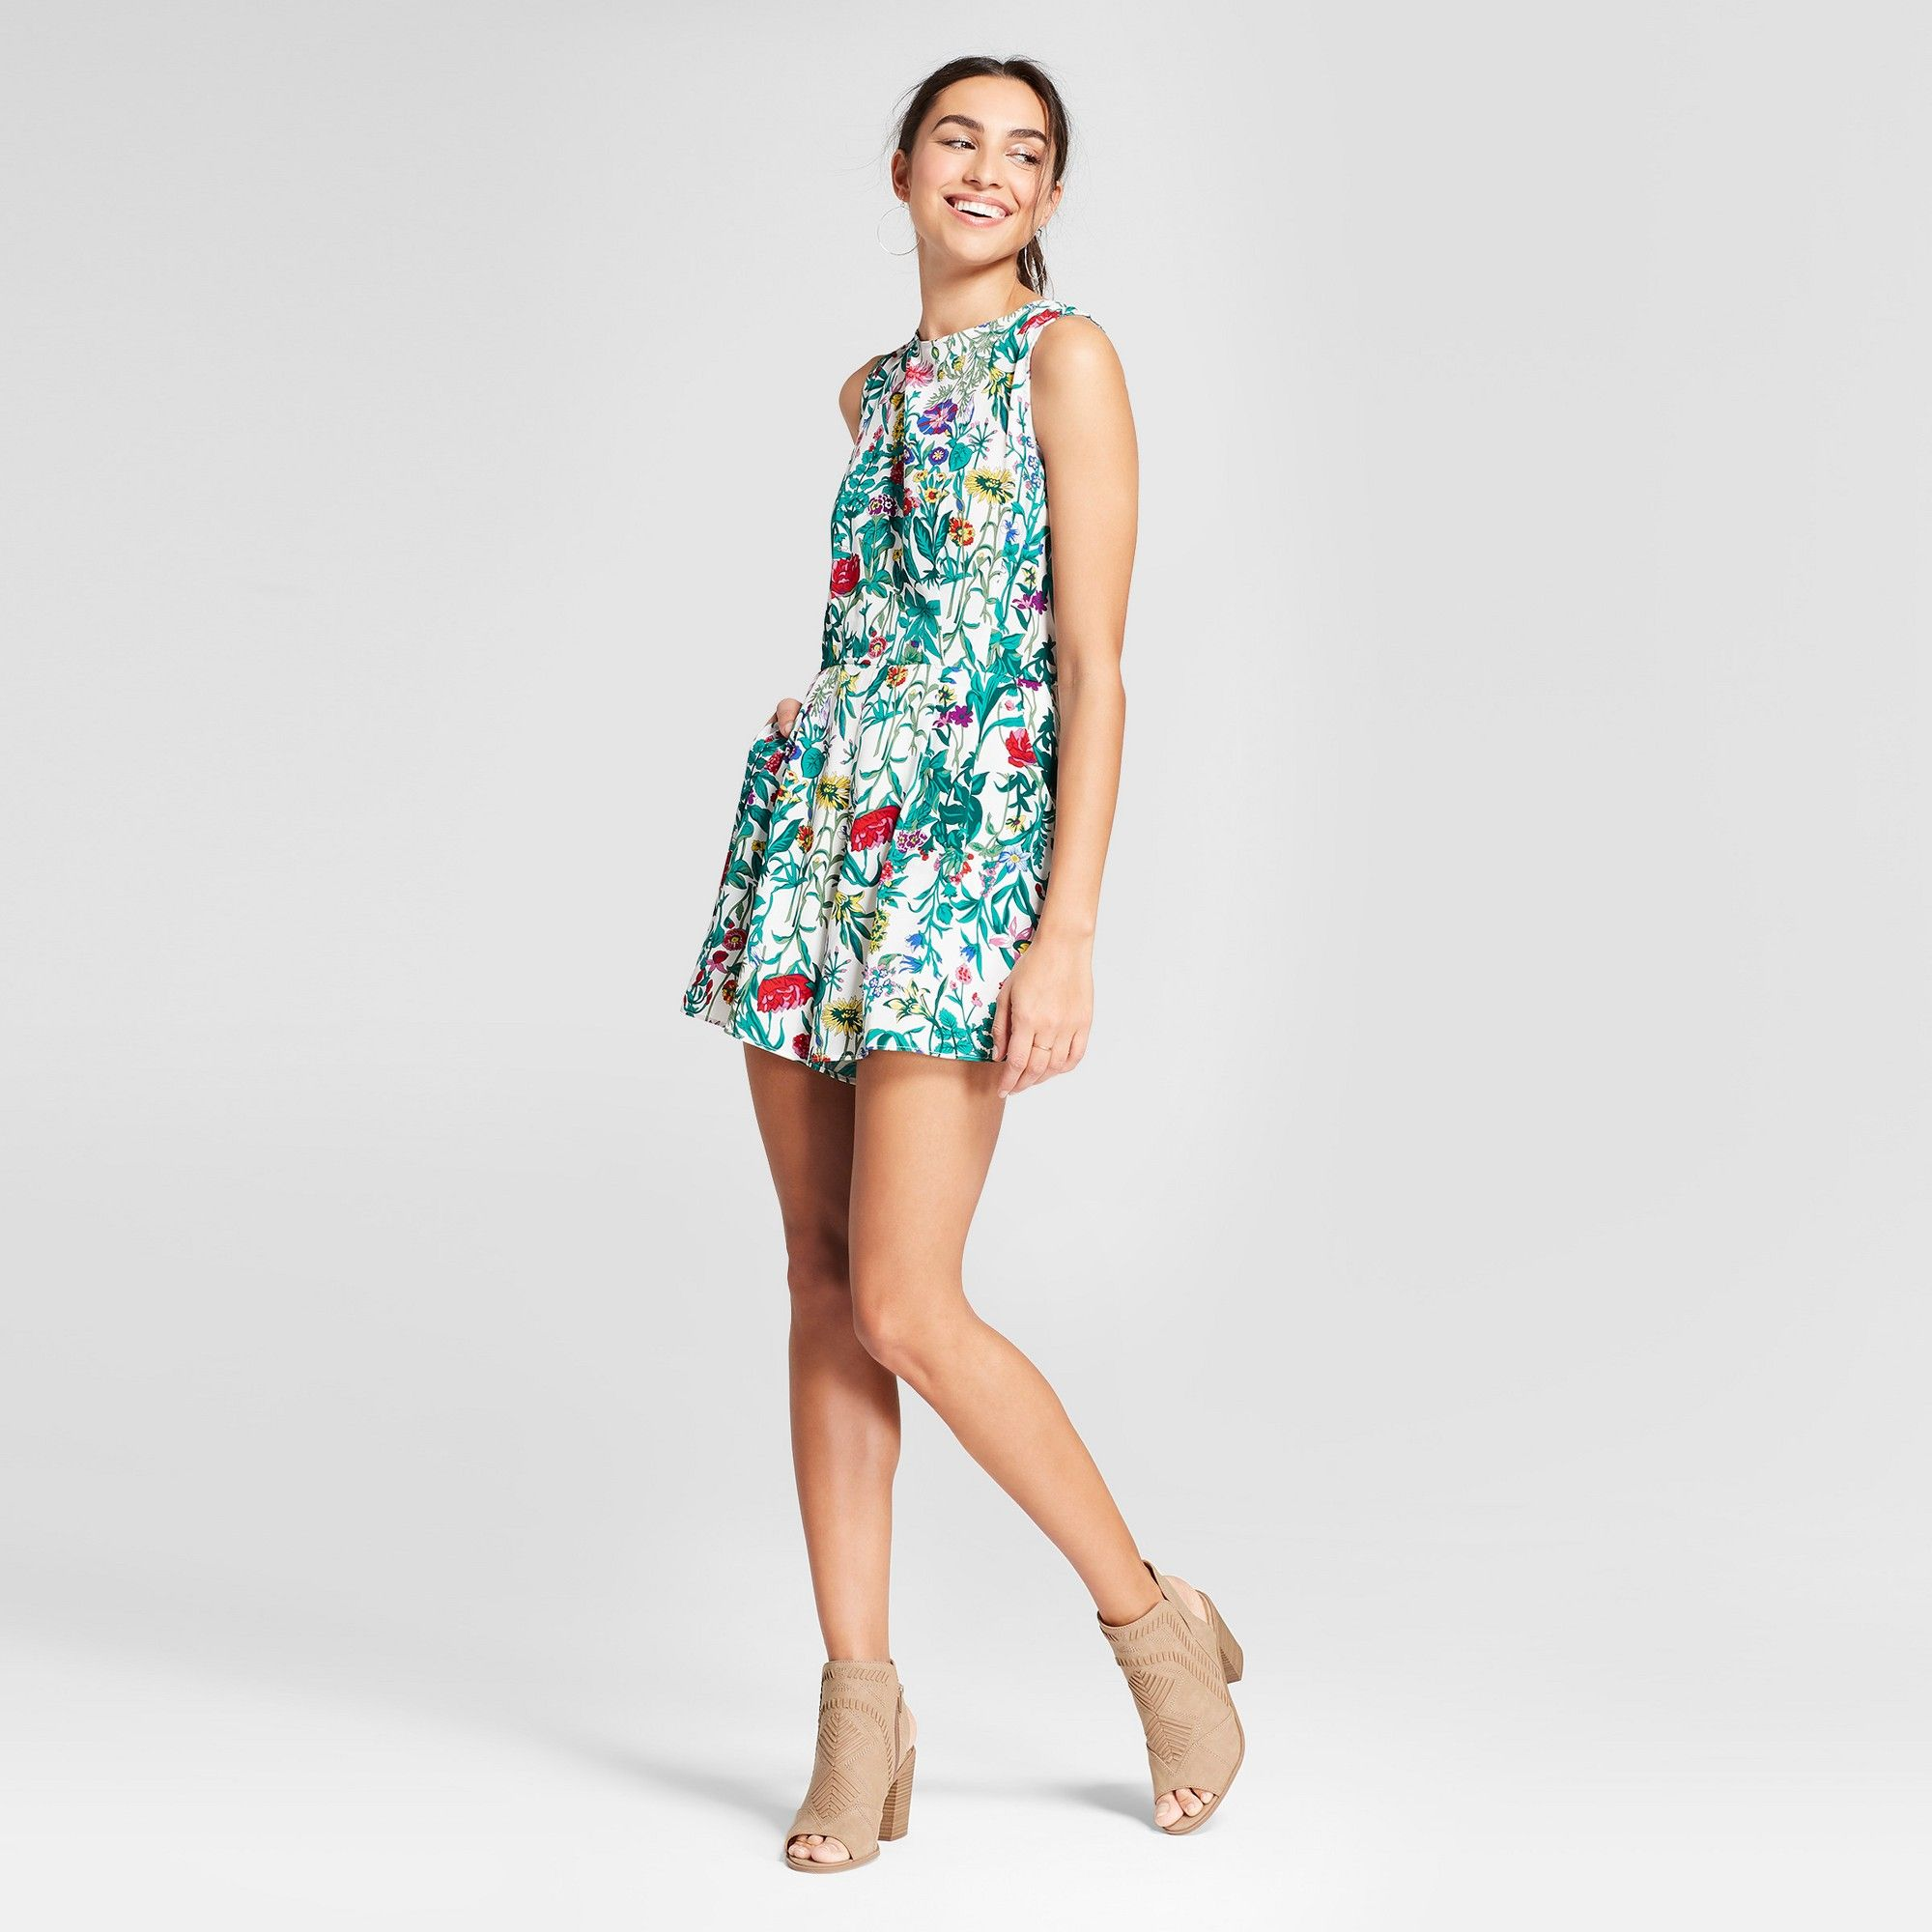 Womenus deep v back floral romper k by kersh whitegreen xs products